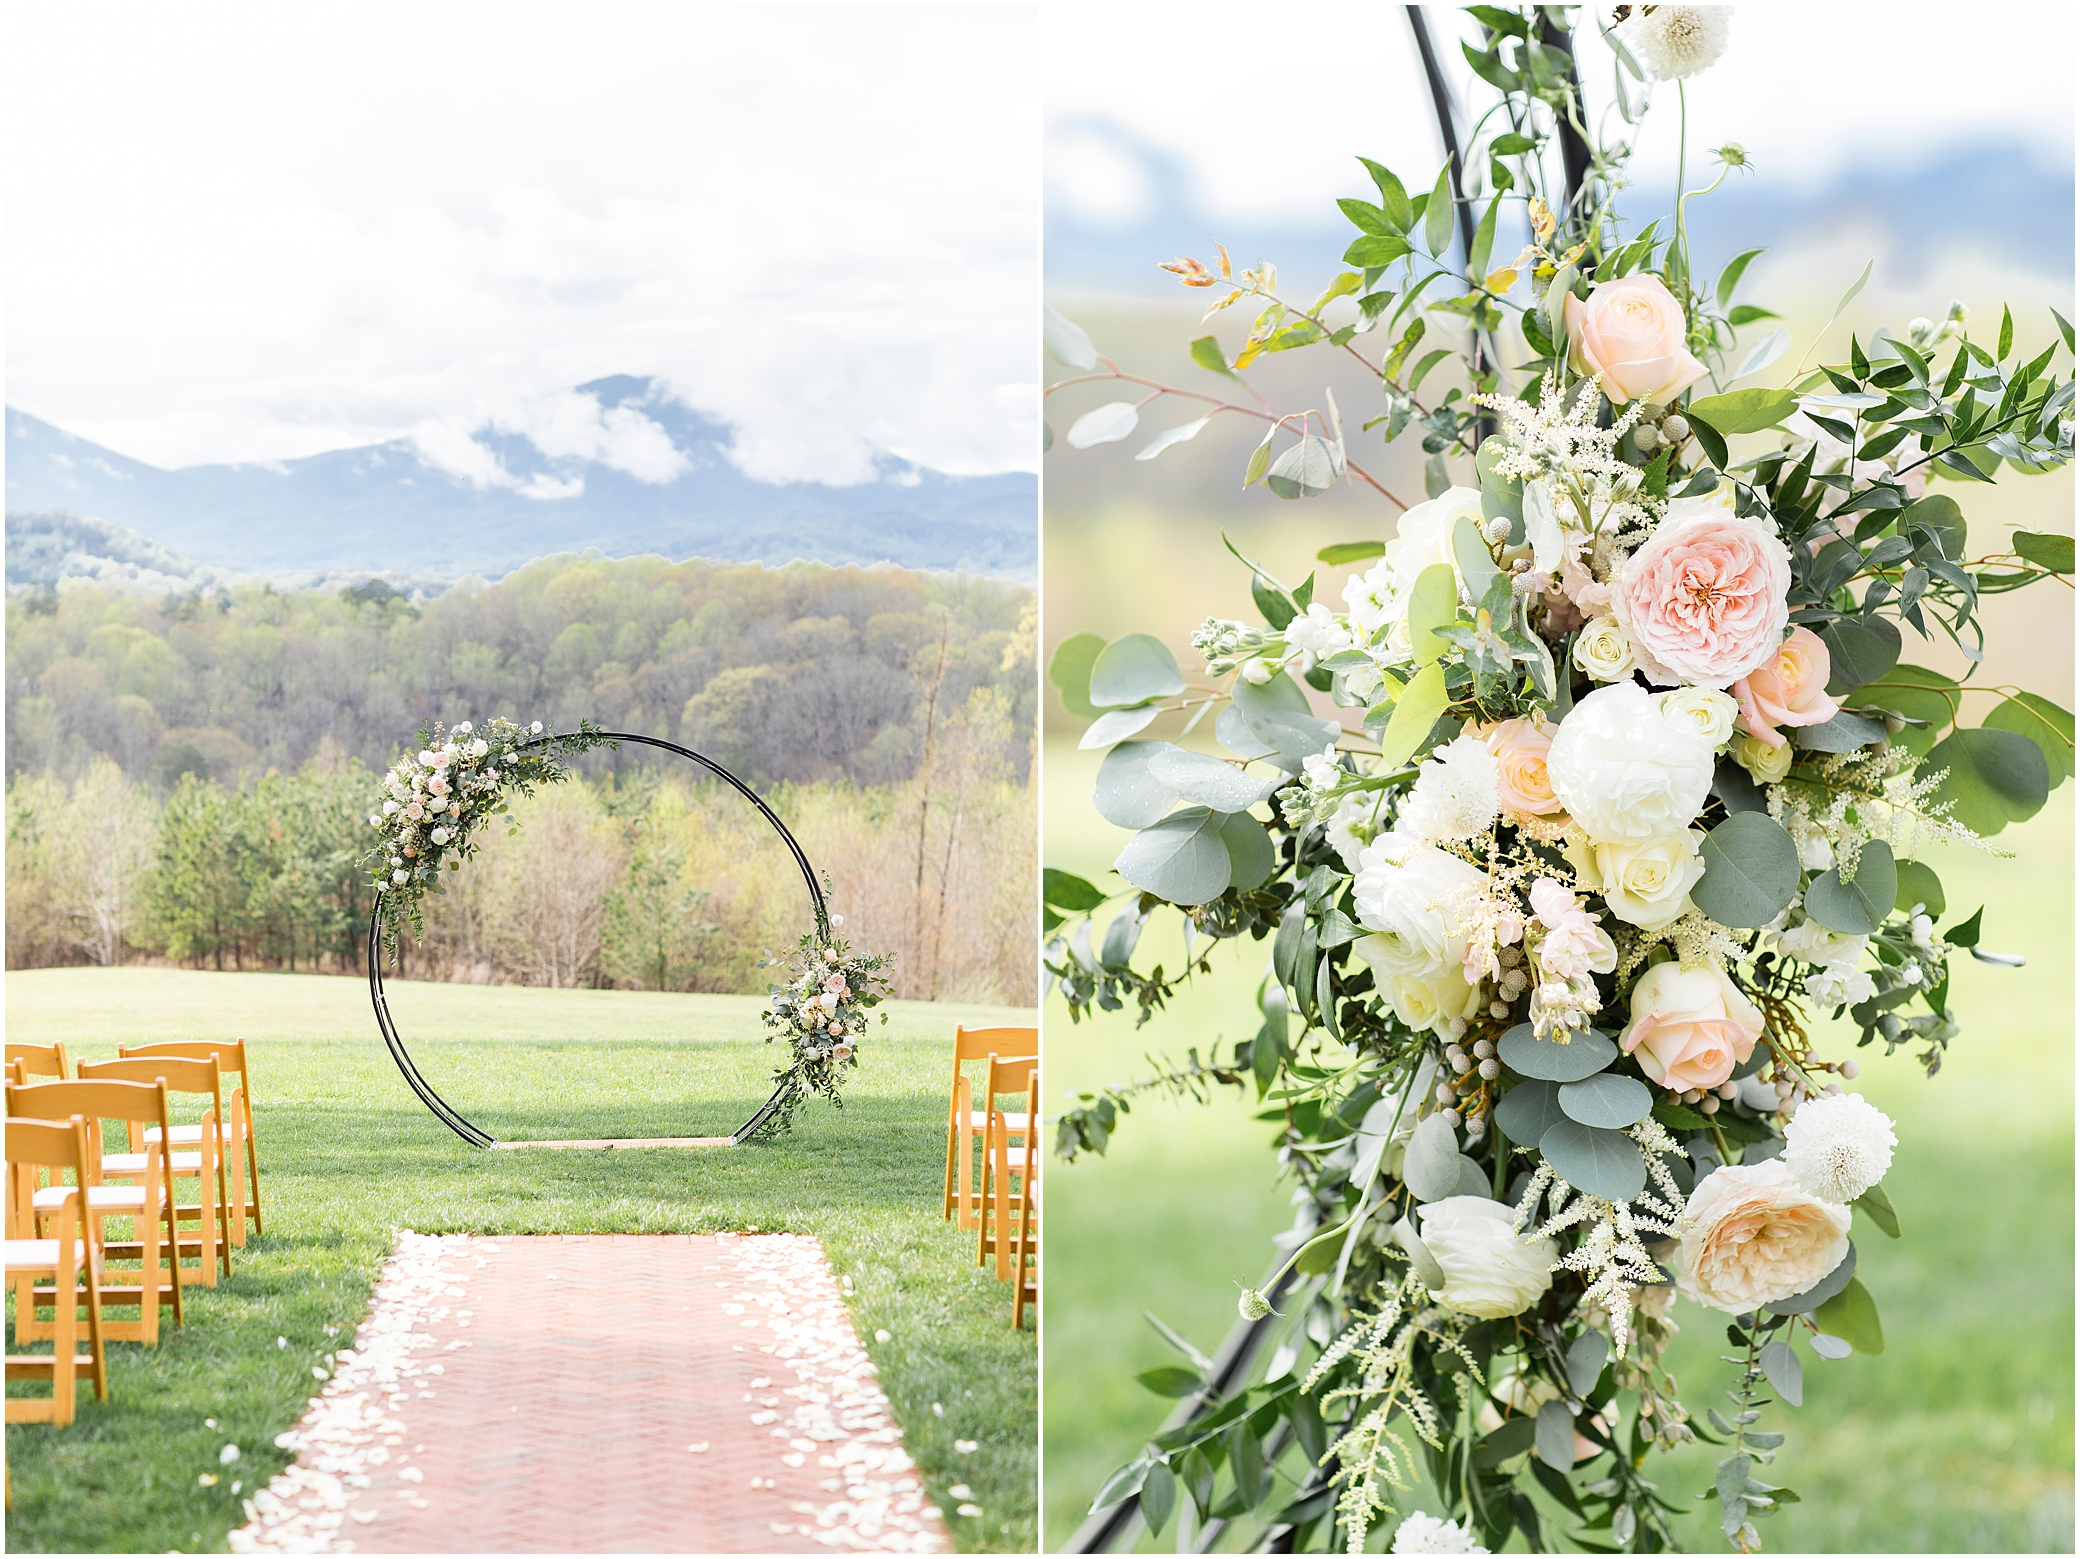 spring wedding ceremony at a wedding at sierra vista, bloom by doyle's